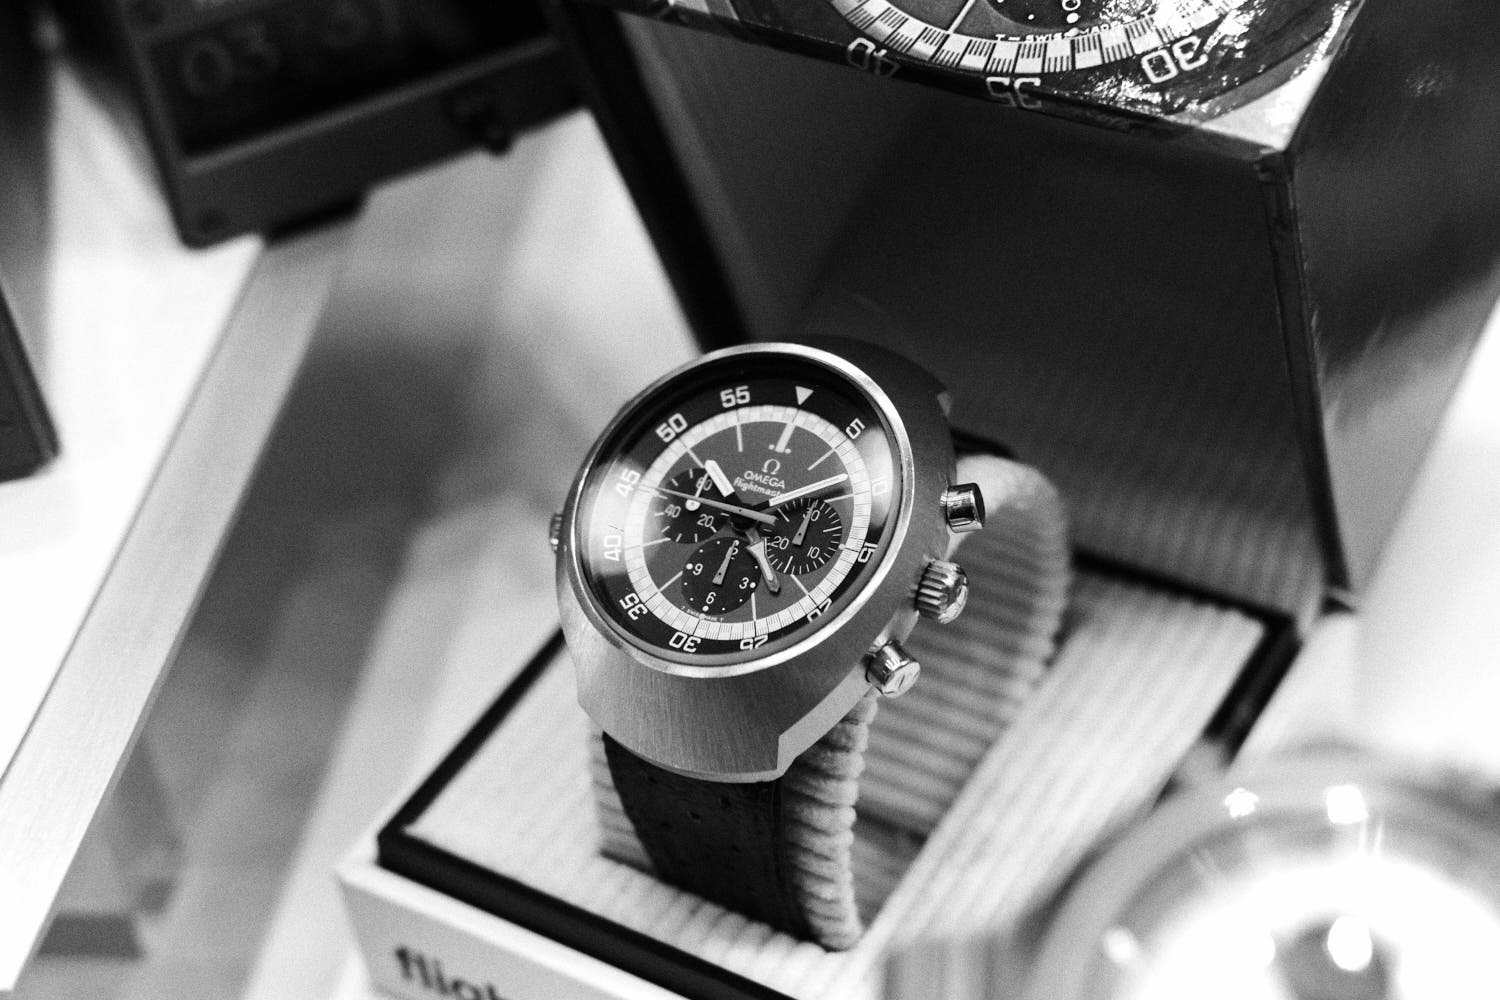 flightmaster1-Omega-Museum-Visit-Monochrome-Watches